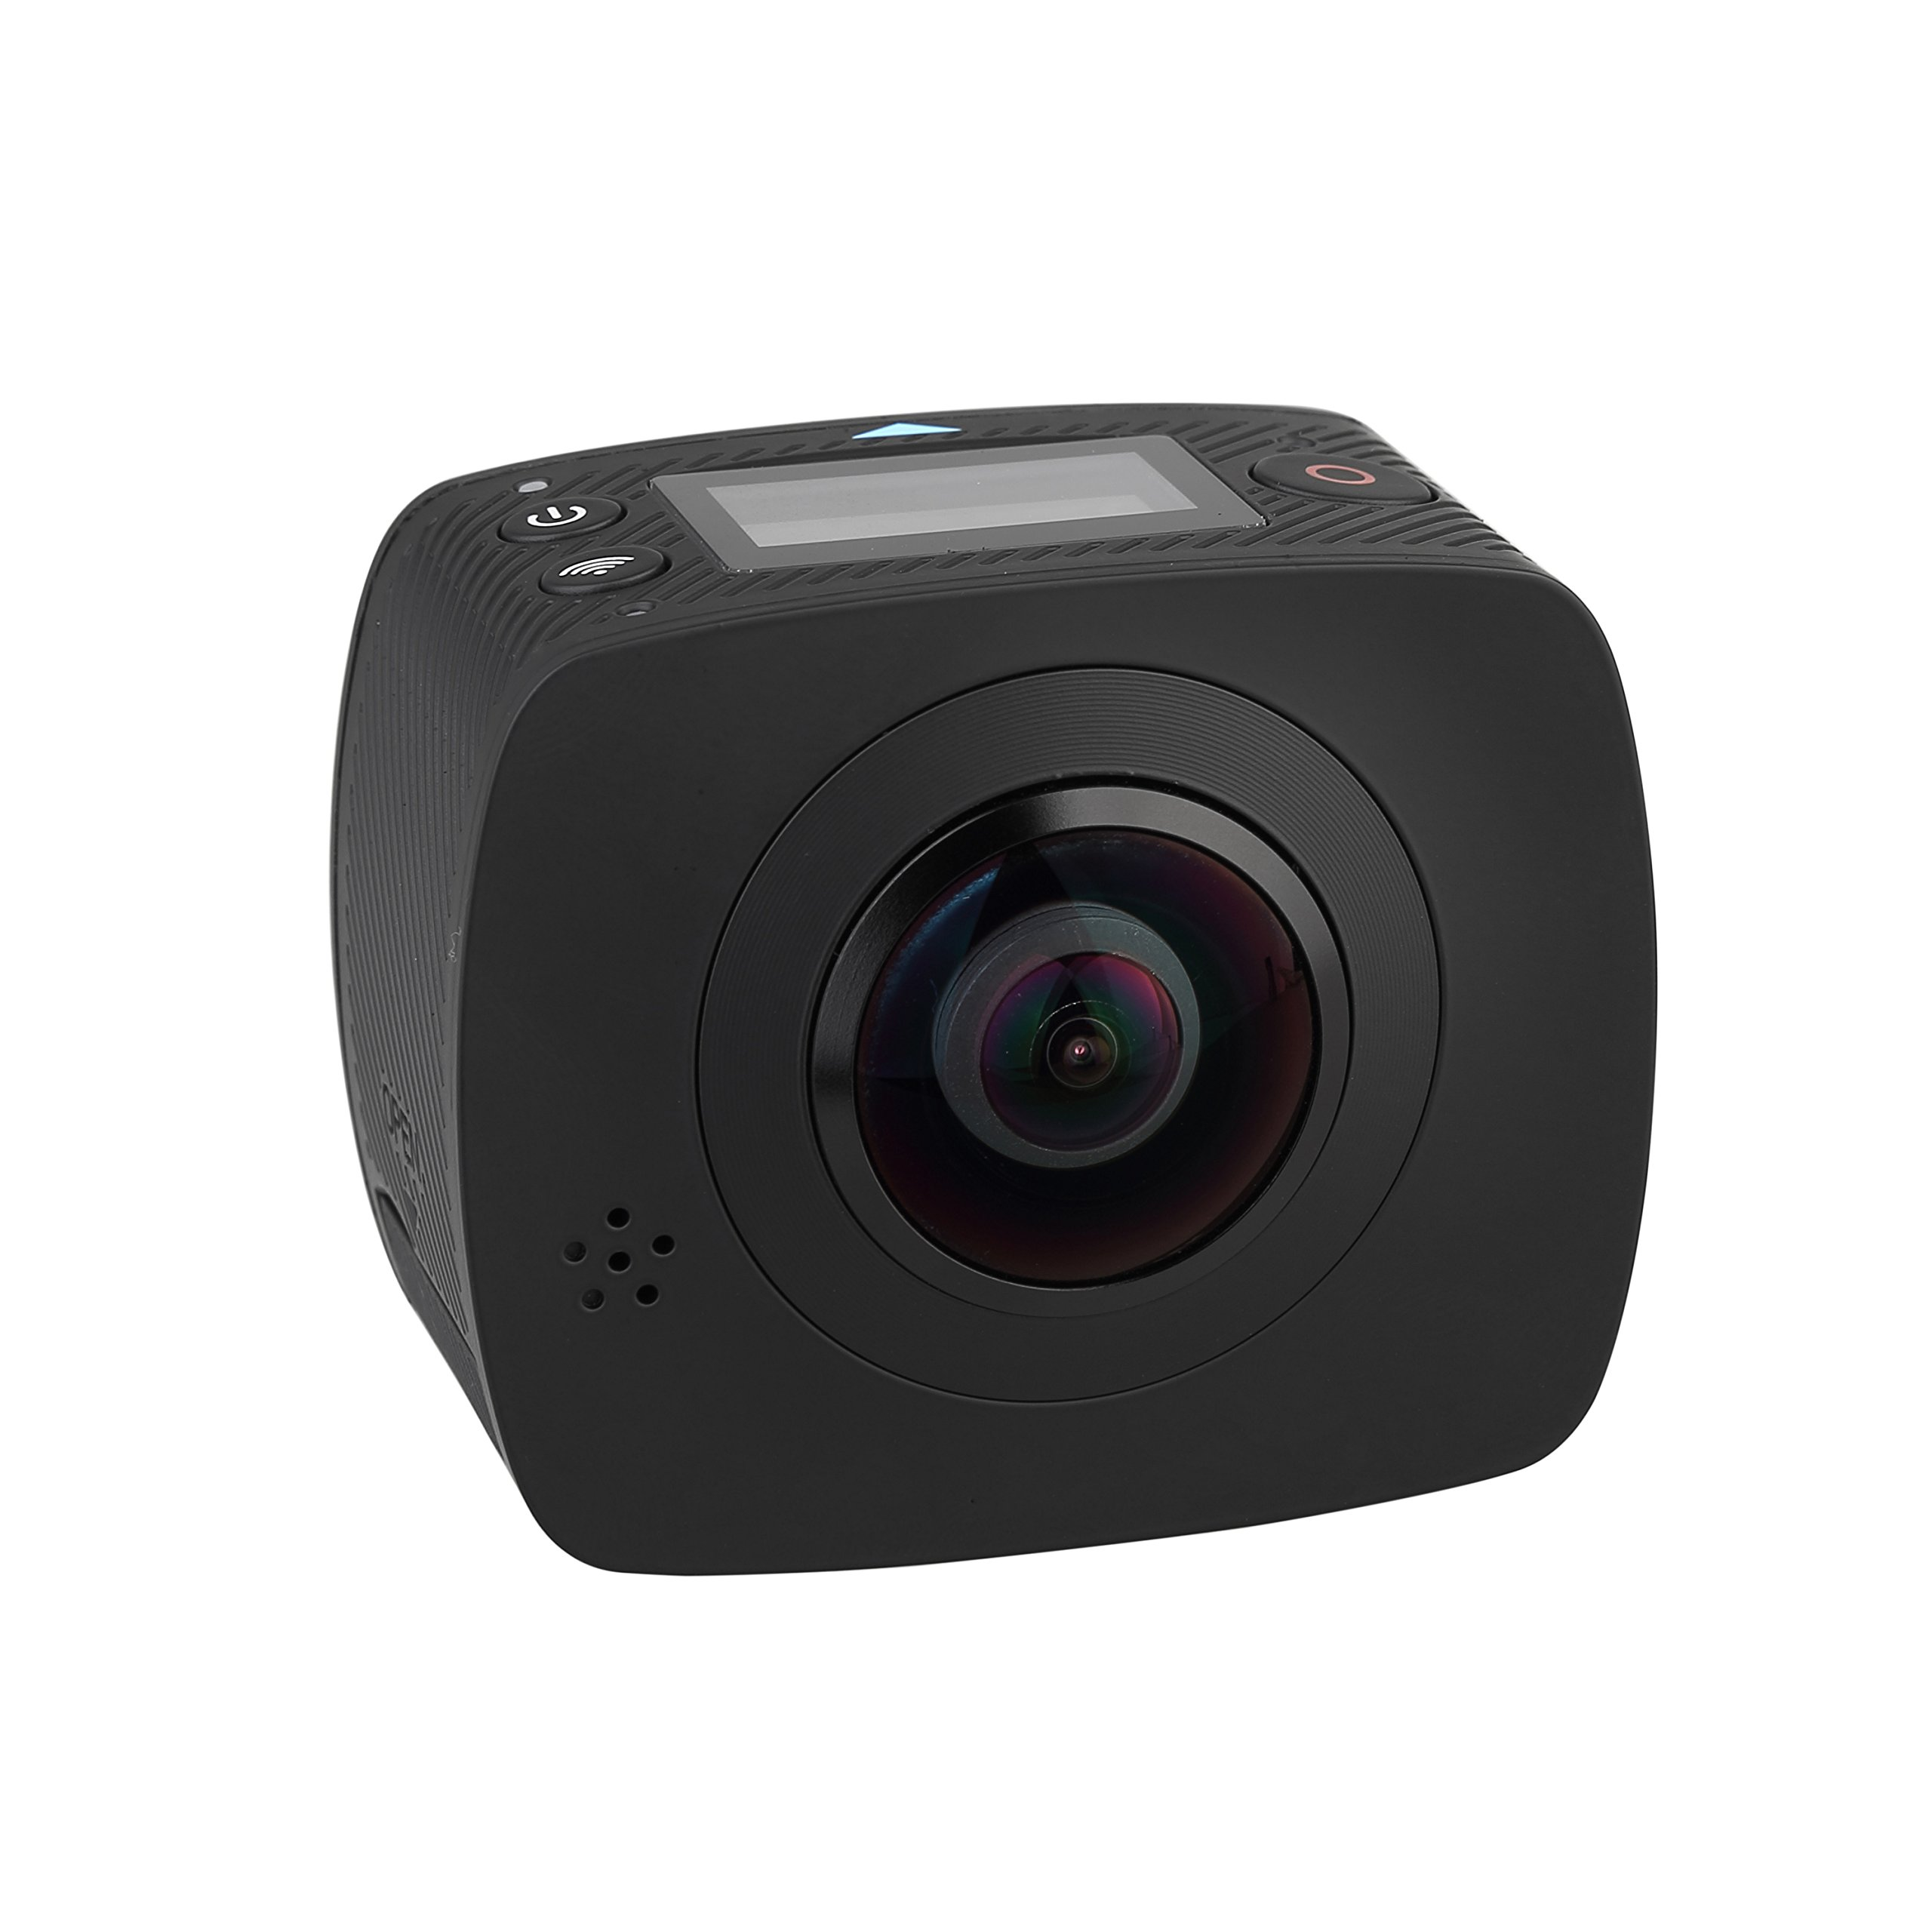 iview 360 PRO Sport Camera Sony CMOS 8MP Pixels Dual Lens 720 Degree Panoramic View VR Format Compatible with All VR Devices TV Tuners & Video Capture Black (360 Pro Camera)